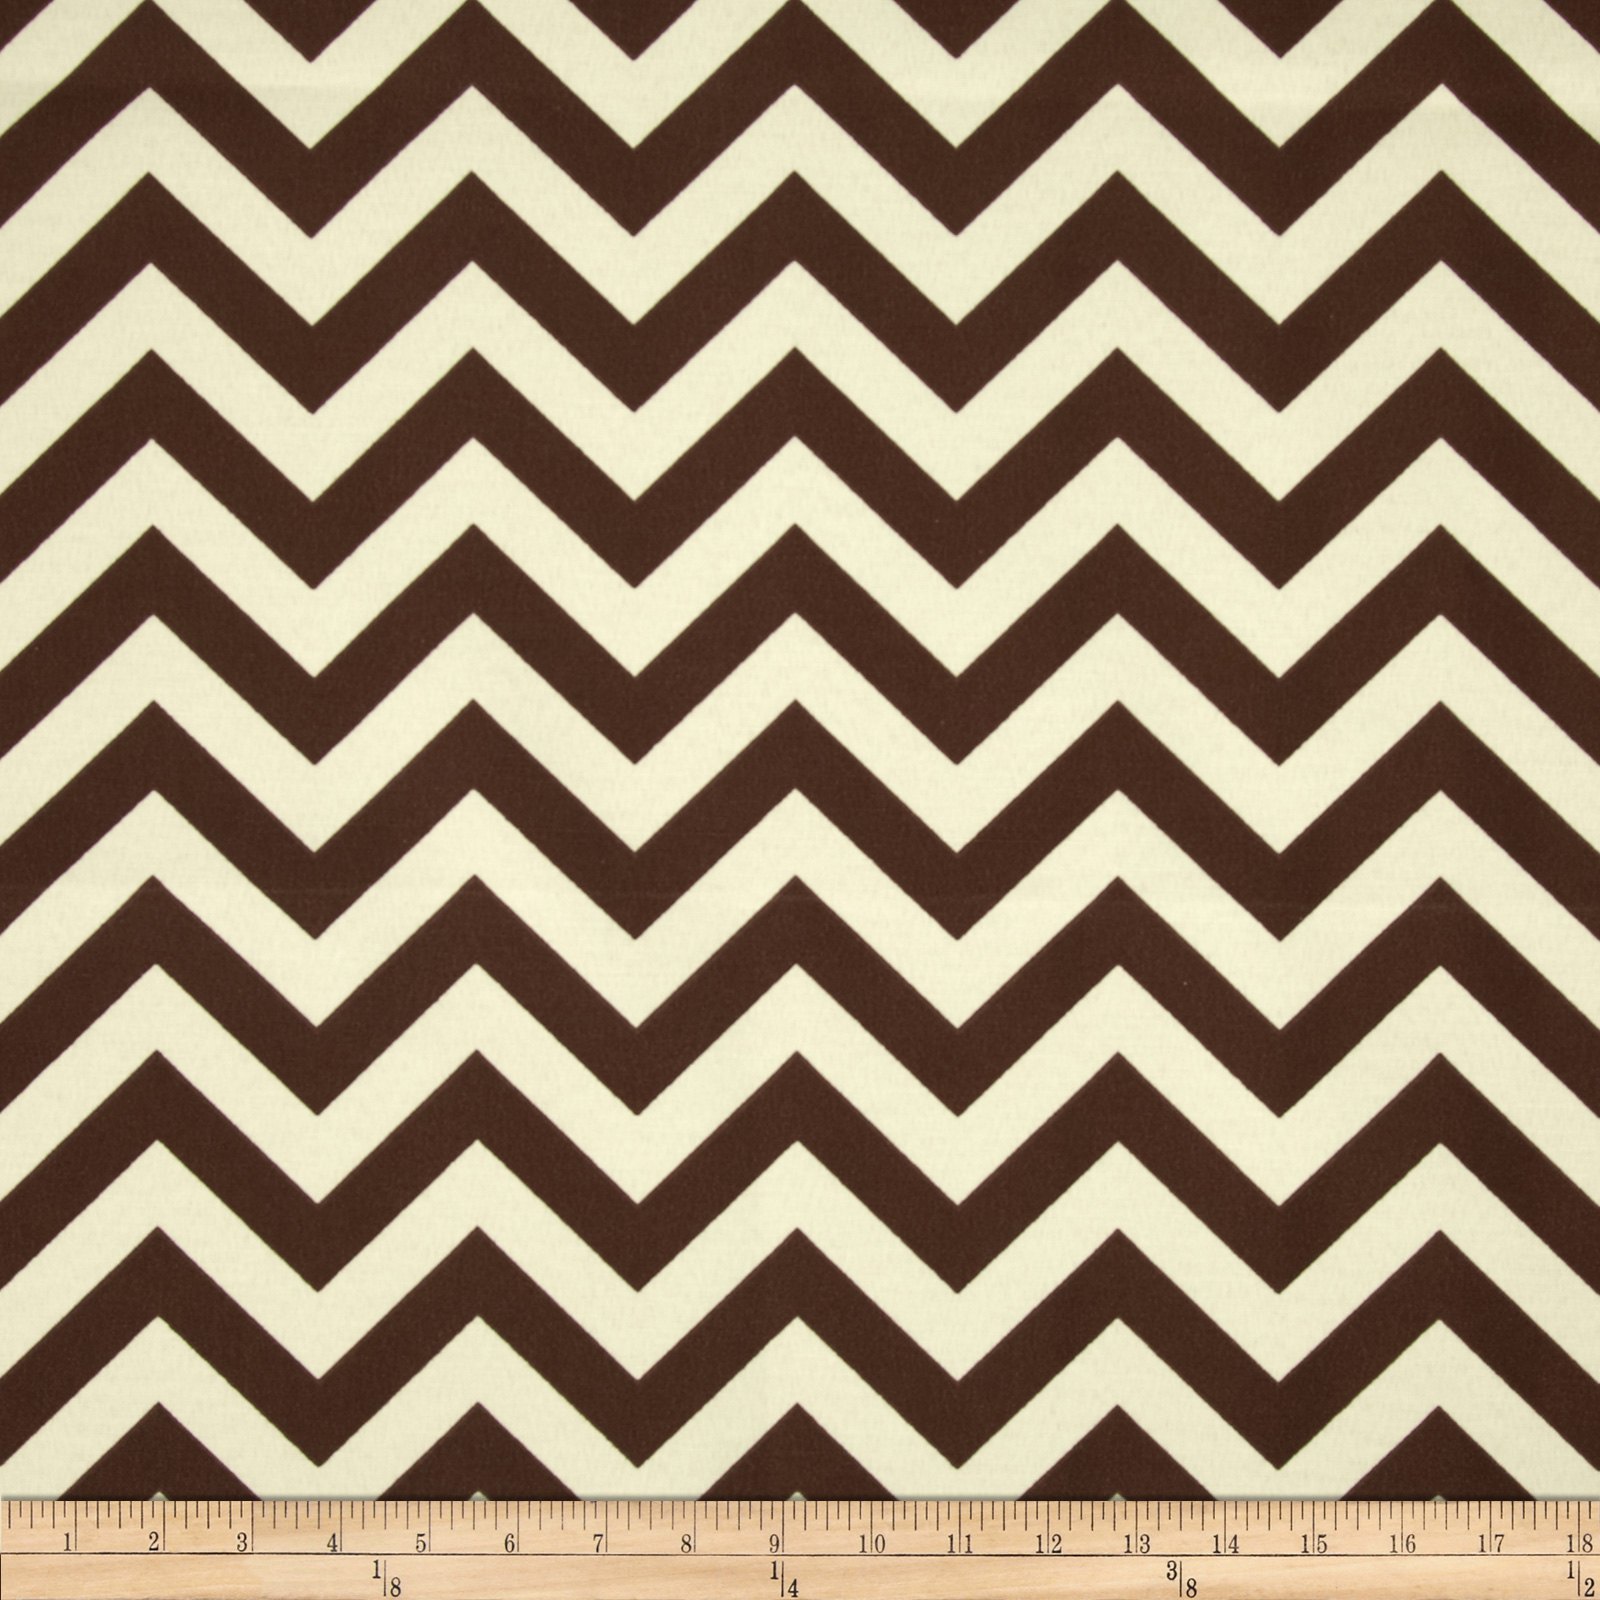 Premier Prints Indoor/Outdoor Zig Zag Safari Fabric